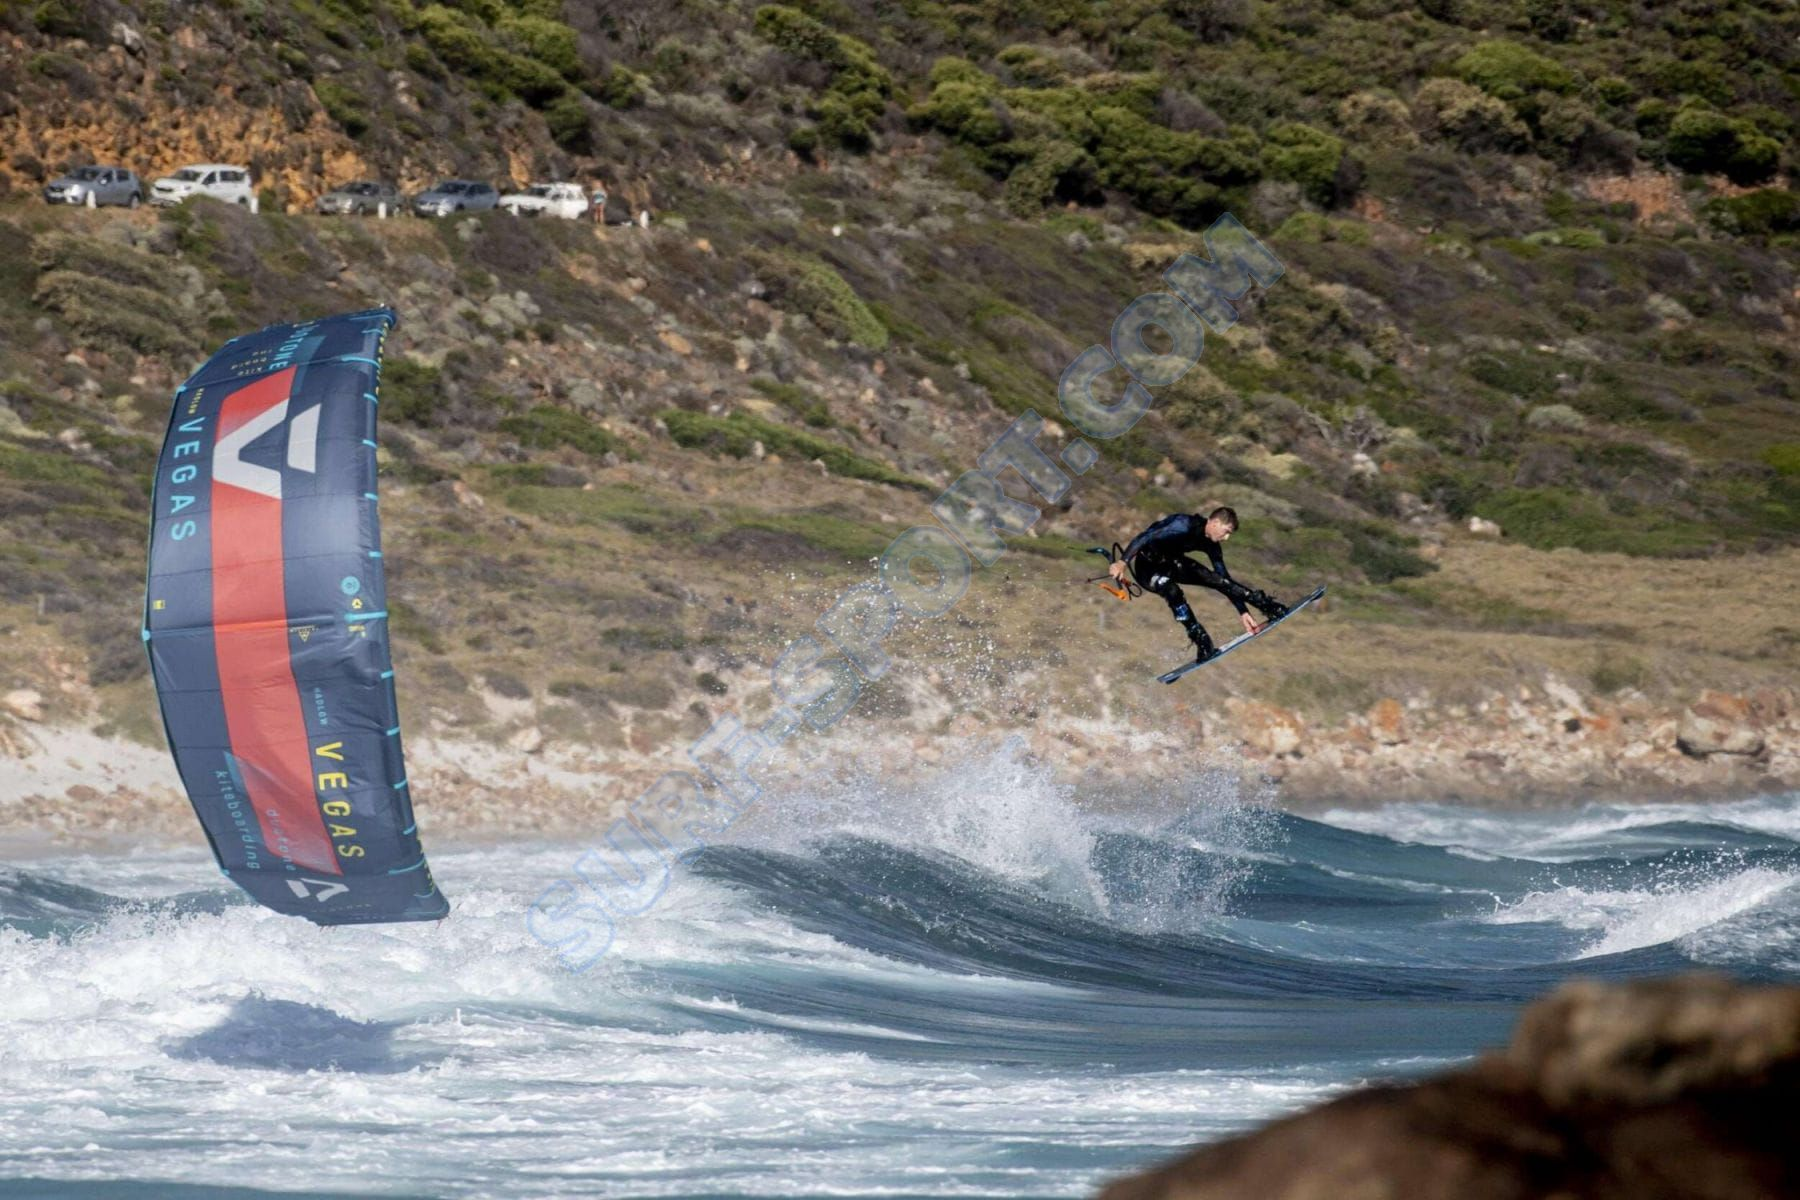 Pianka_ION_2021_AMP_BlackCapsule_Kitesurfing.jpg